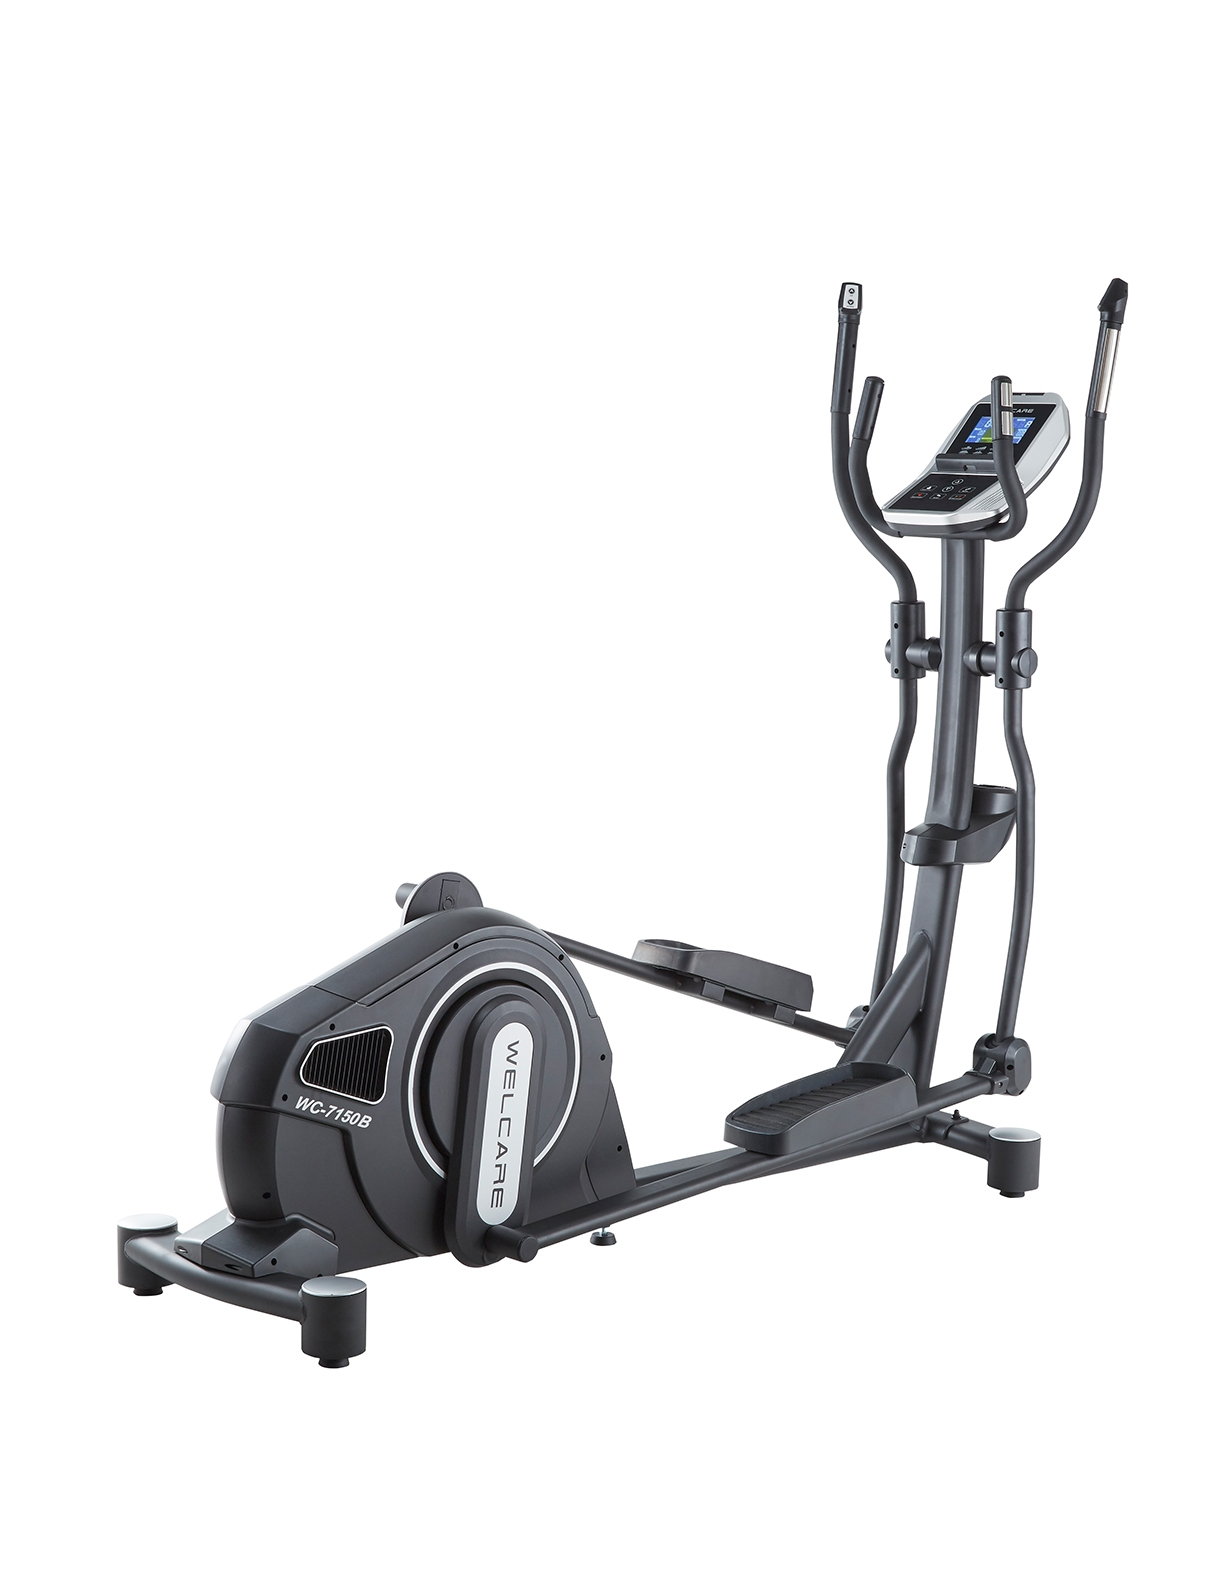 WC 7150B ELIPTICAL CROSS TRAINER